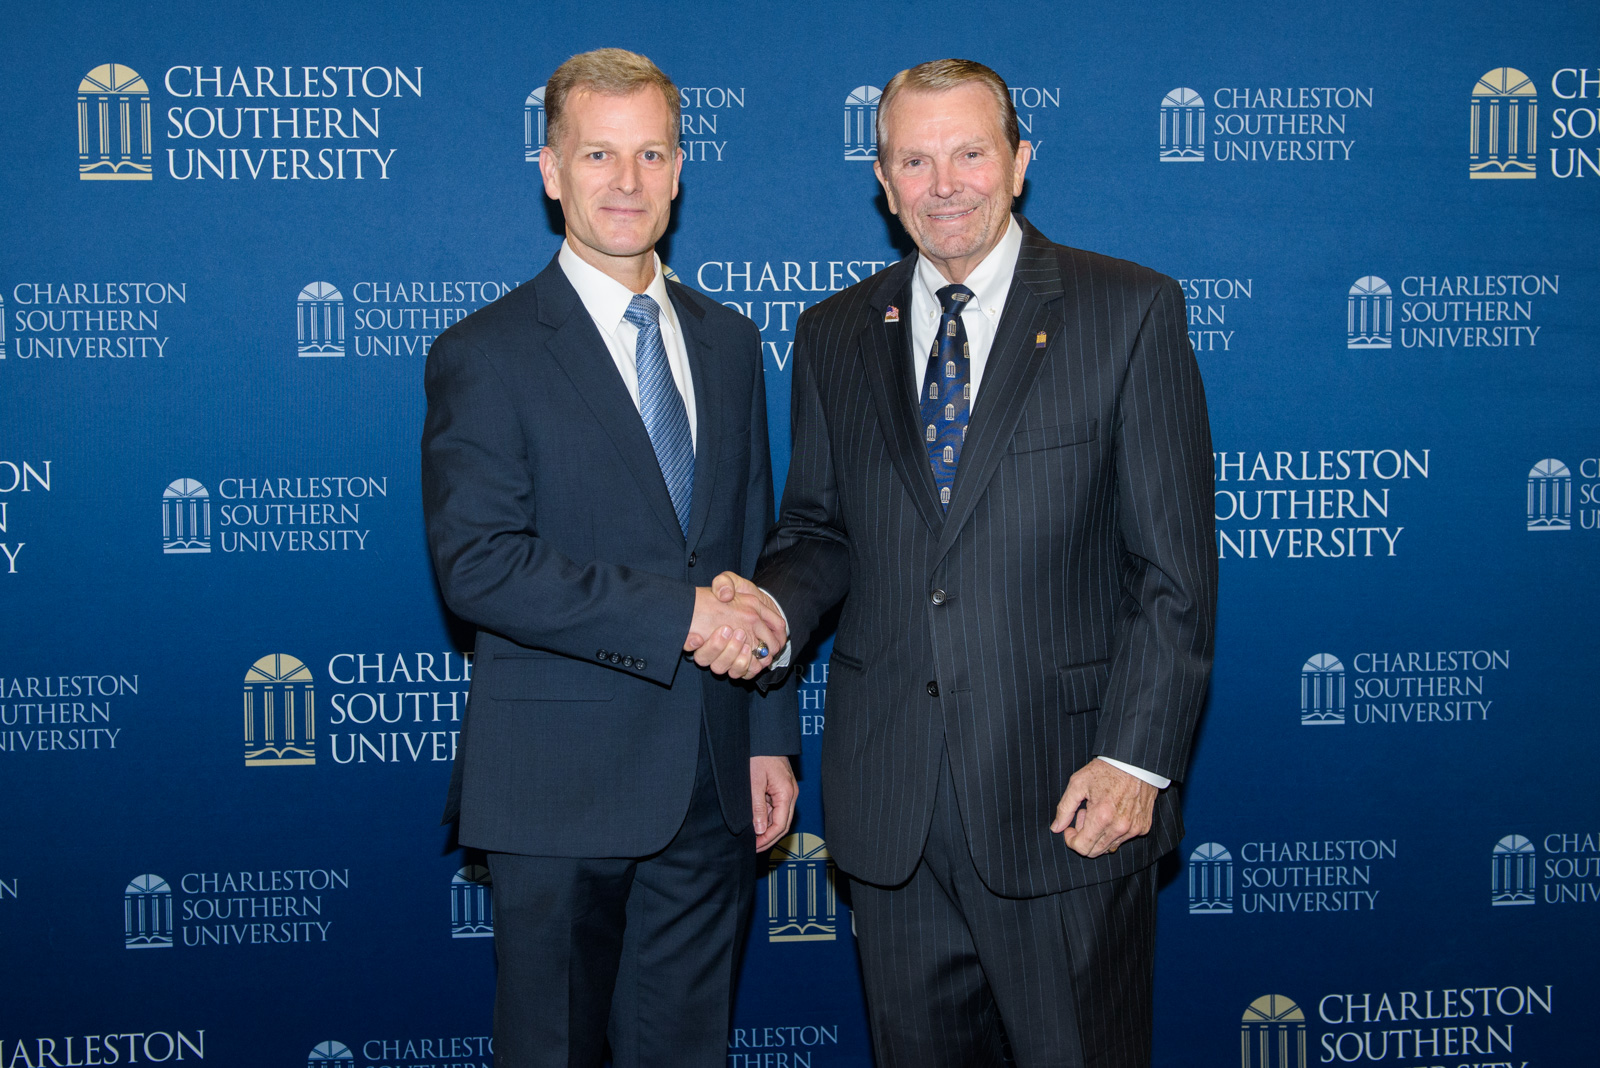 The Charleston Southern University Board of Trustees unanimously approved the appointment of Dondi E. Costin, PhD, to serve as the third president of Charleston Southern University.